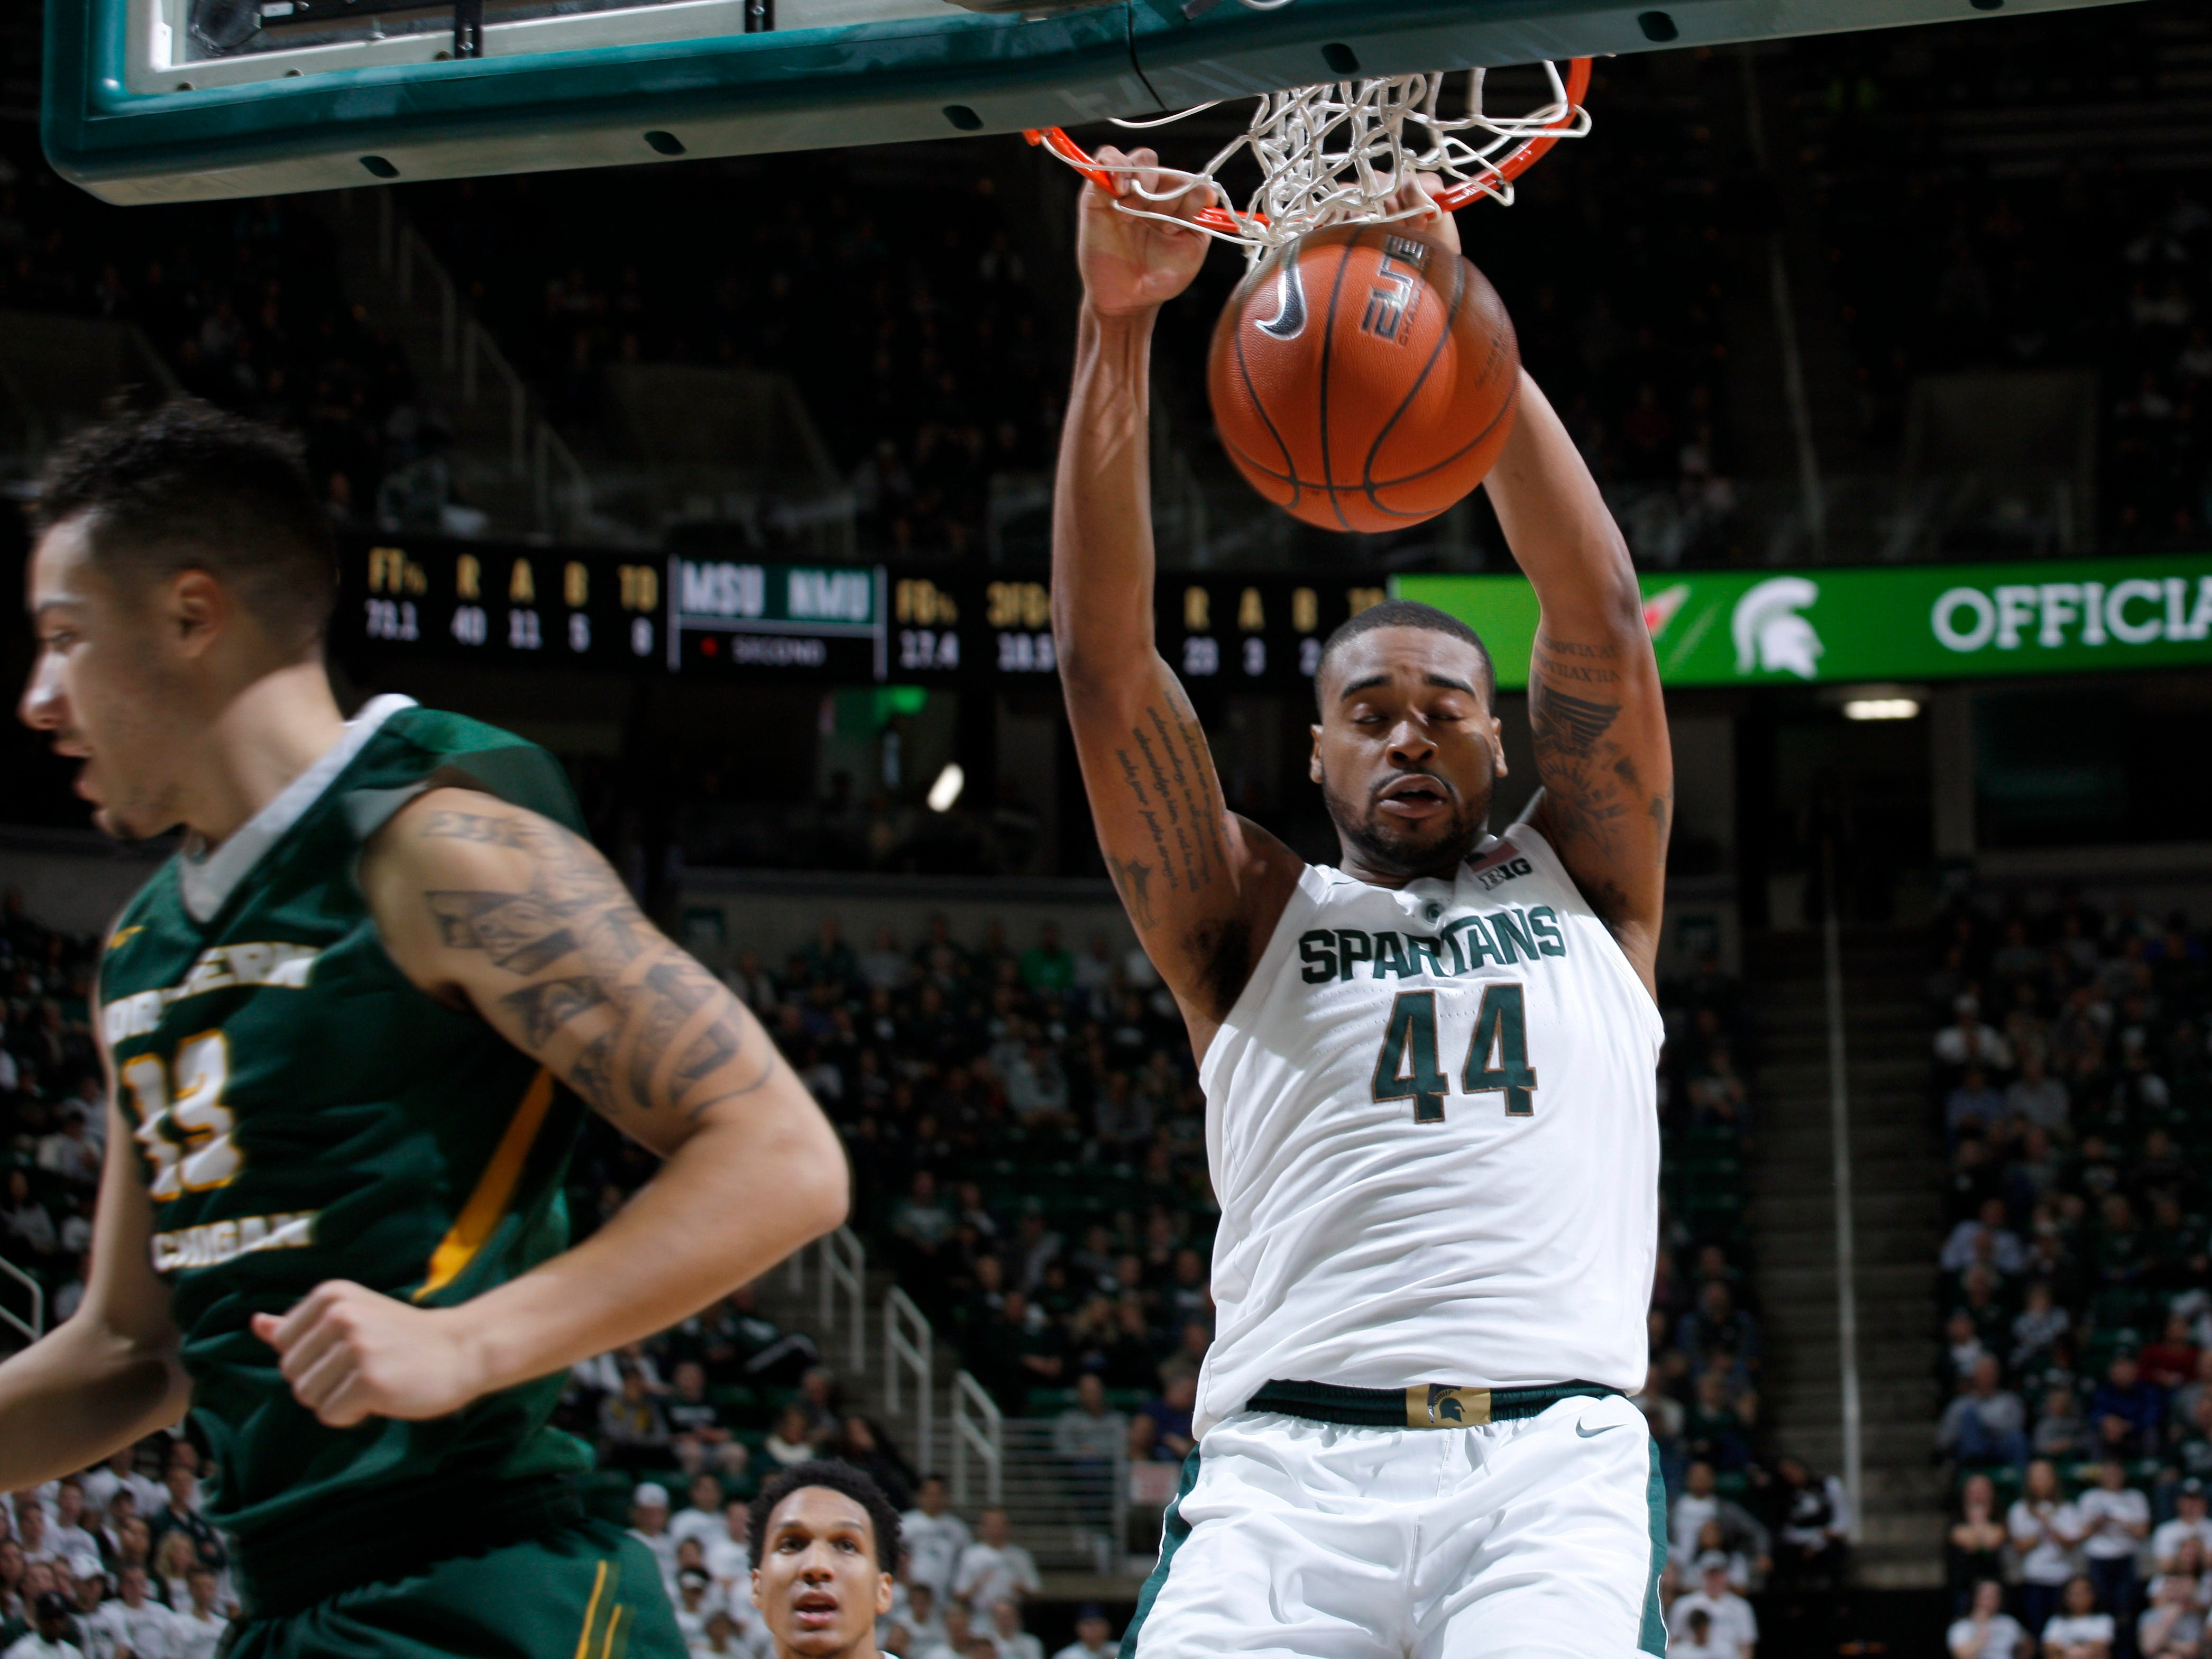 Michigan State's Nick Ward (44) dunks against Northern Michigan's Myles Howard, Tuesday, Oct. 30, 2018, in East Lansing, Mich.